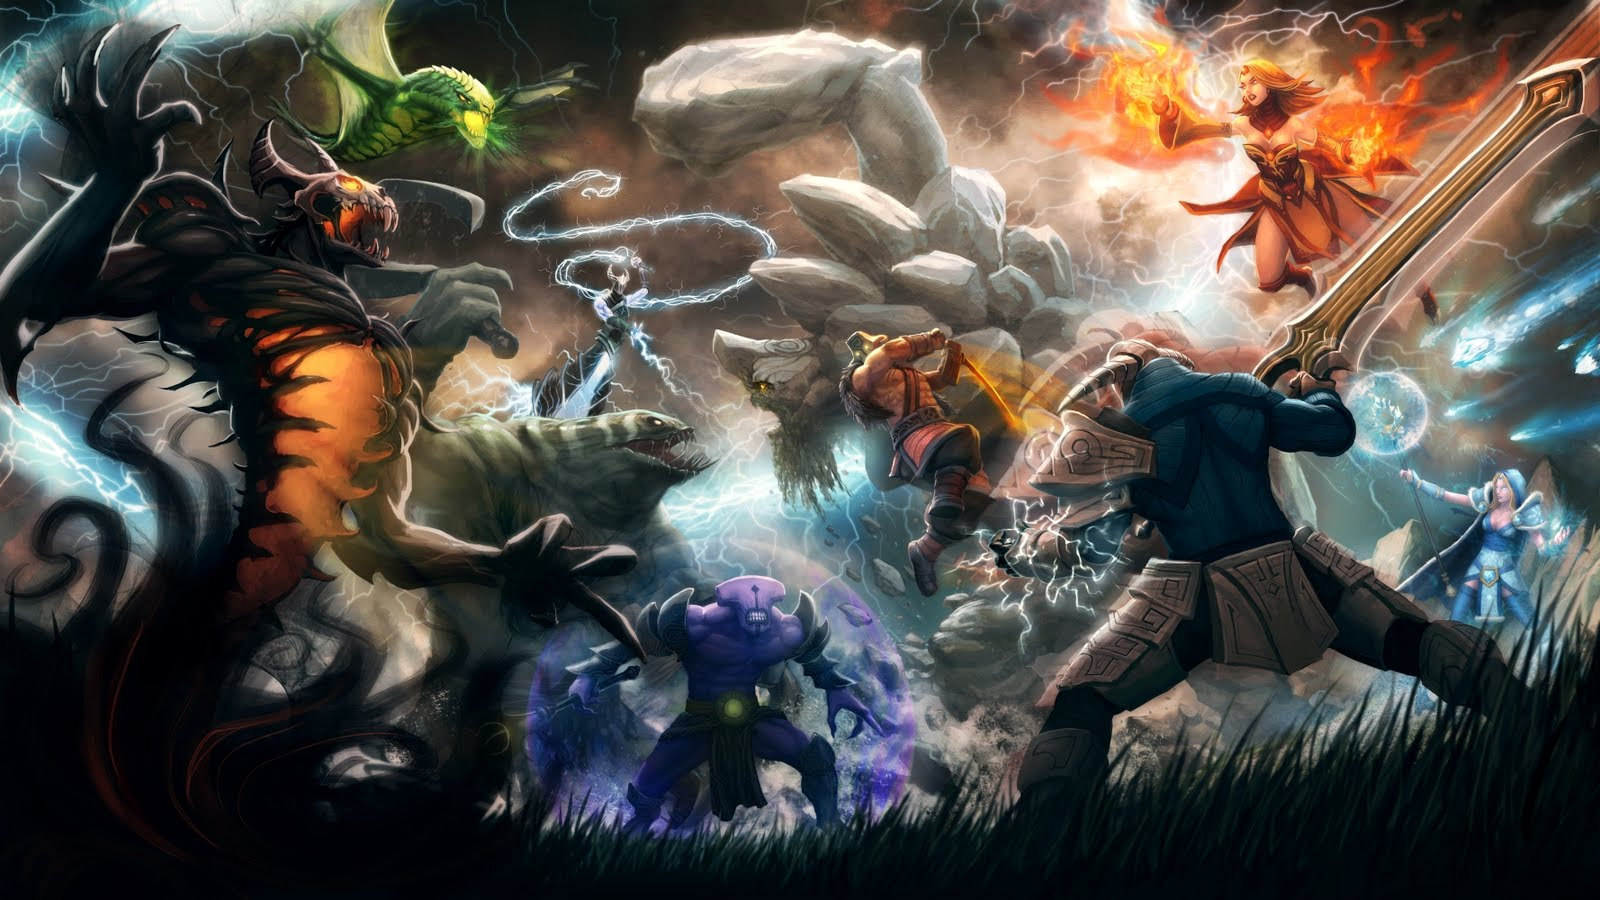 Download Dota 2 Wallpaper With Dota Heroes